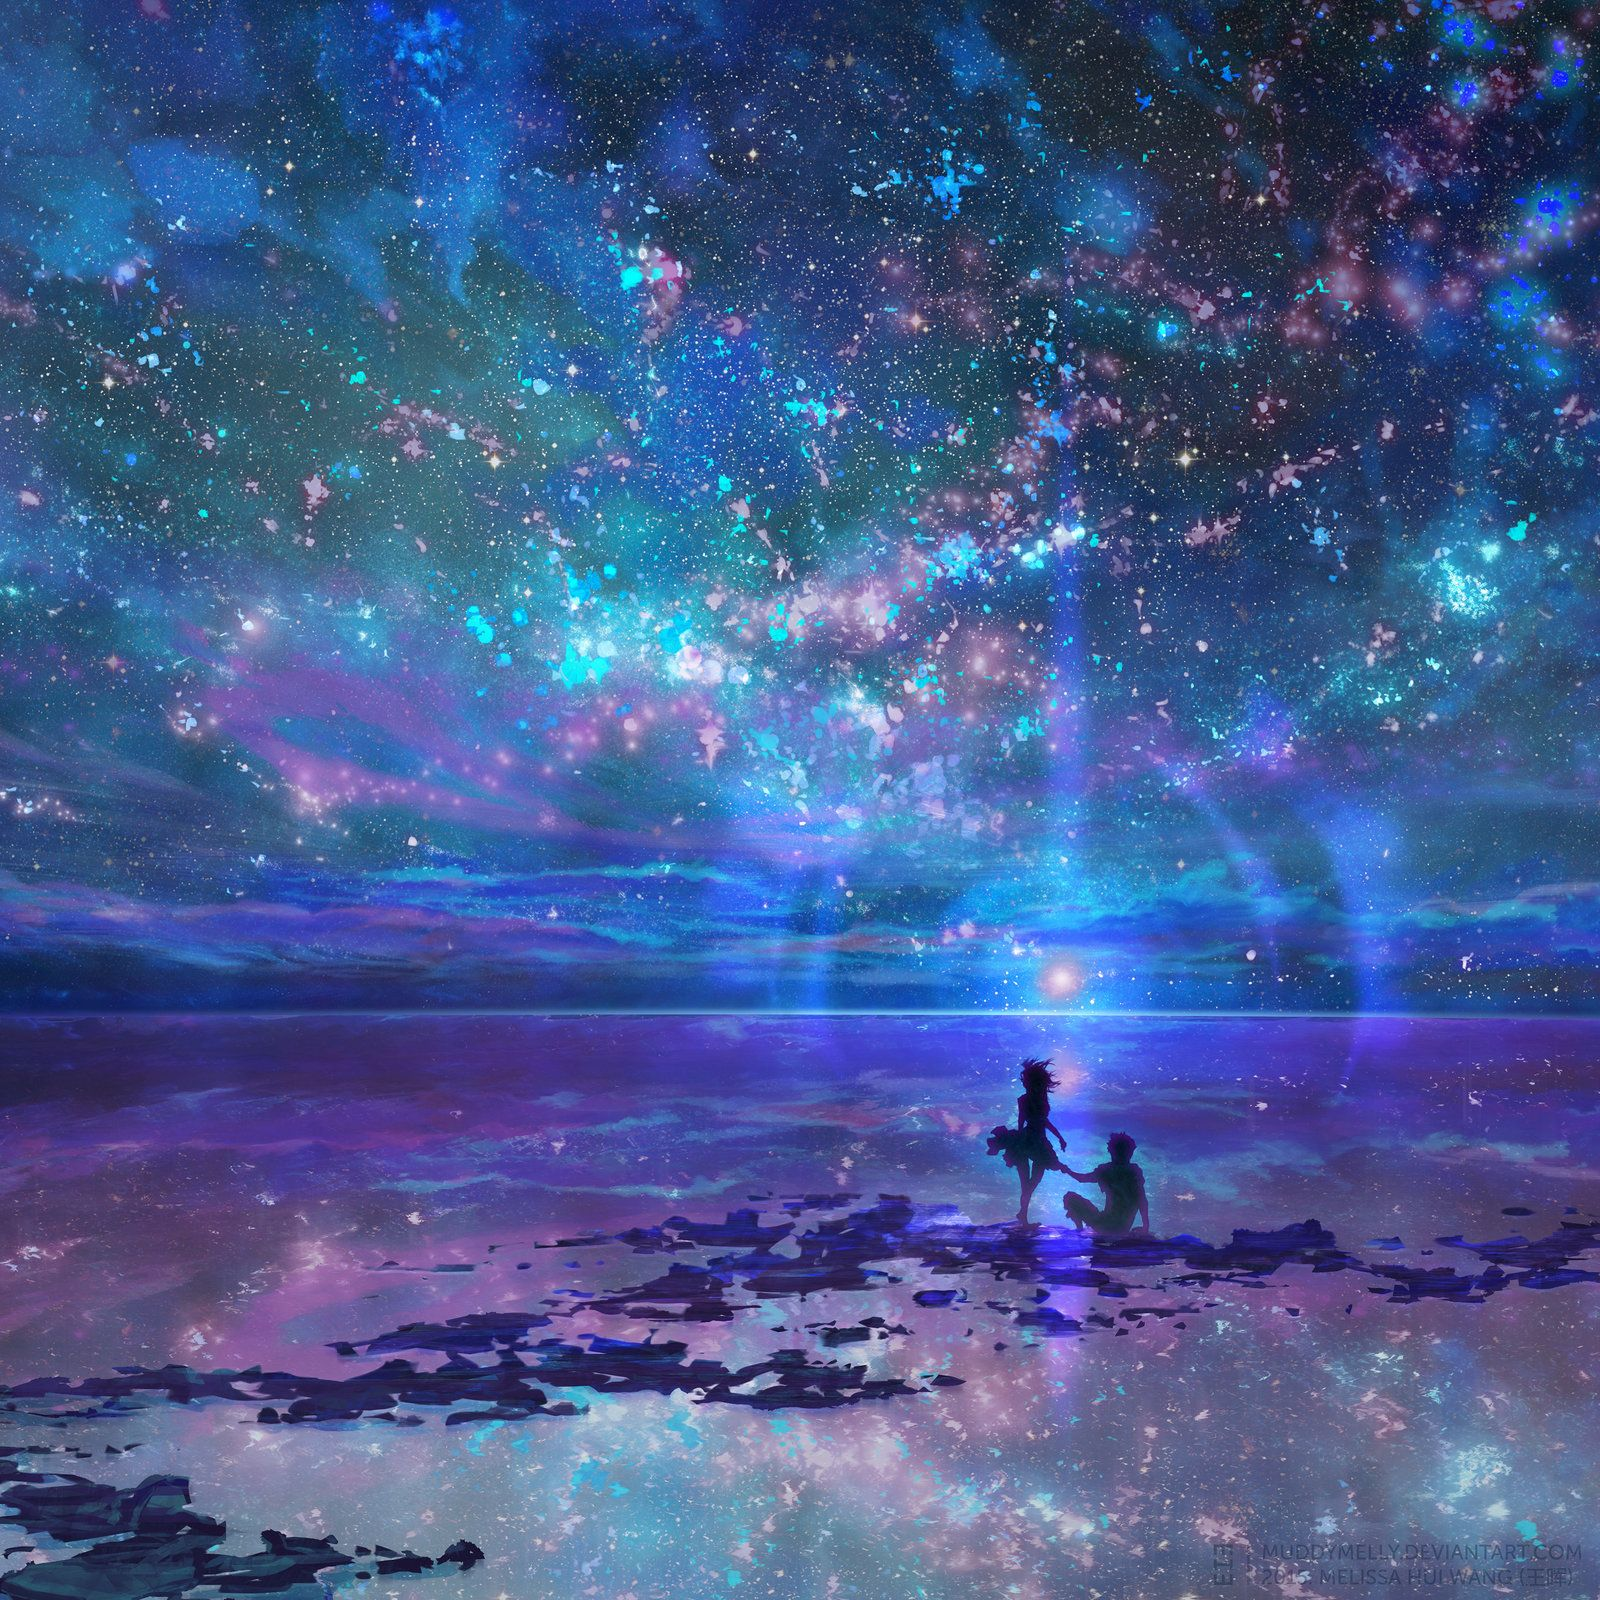 Anime Night Sky: Pin By Brooke On BLUE COLOr